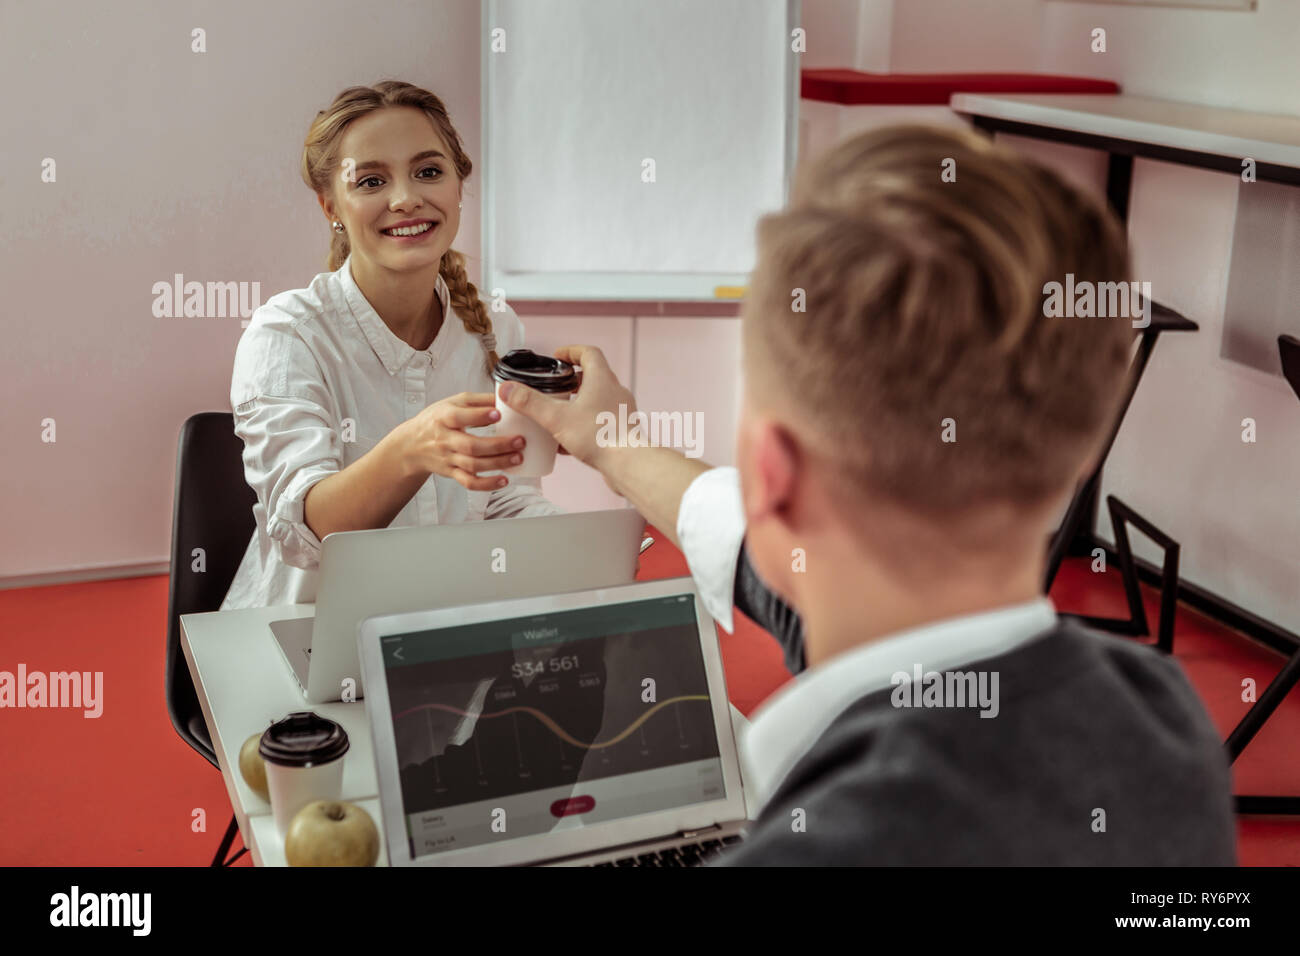 Generous short-haired guy proposing his coffee in cardboard cup to smiling woman - Stock Image